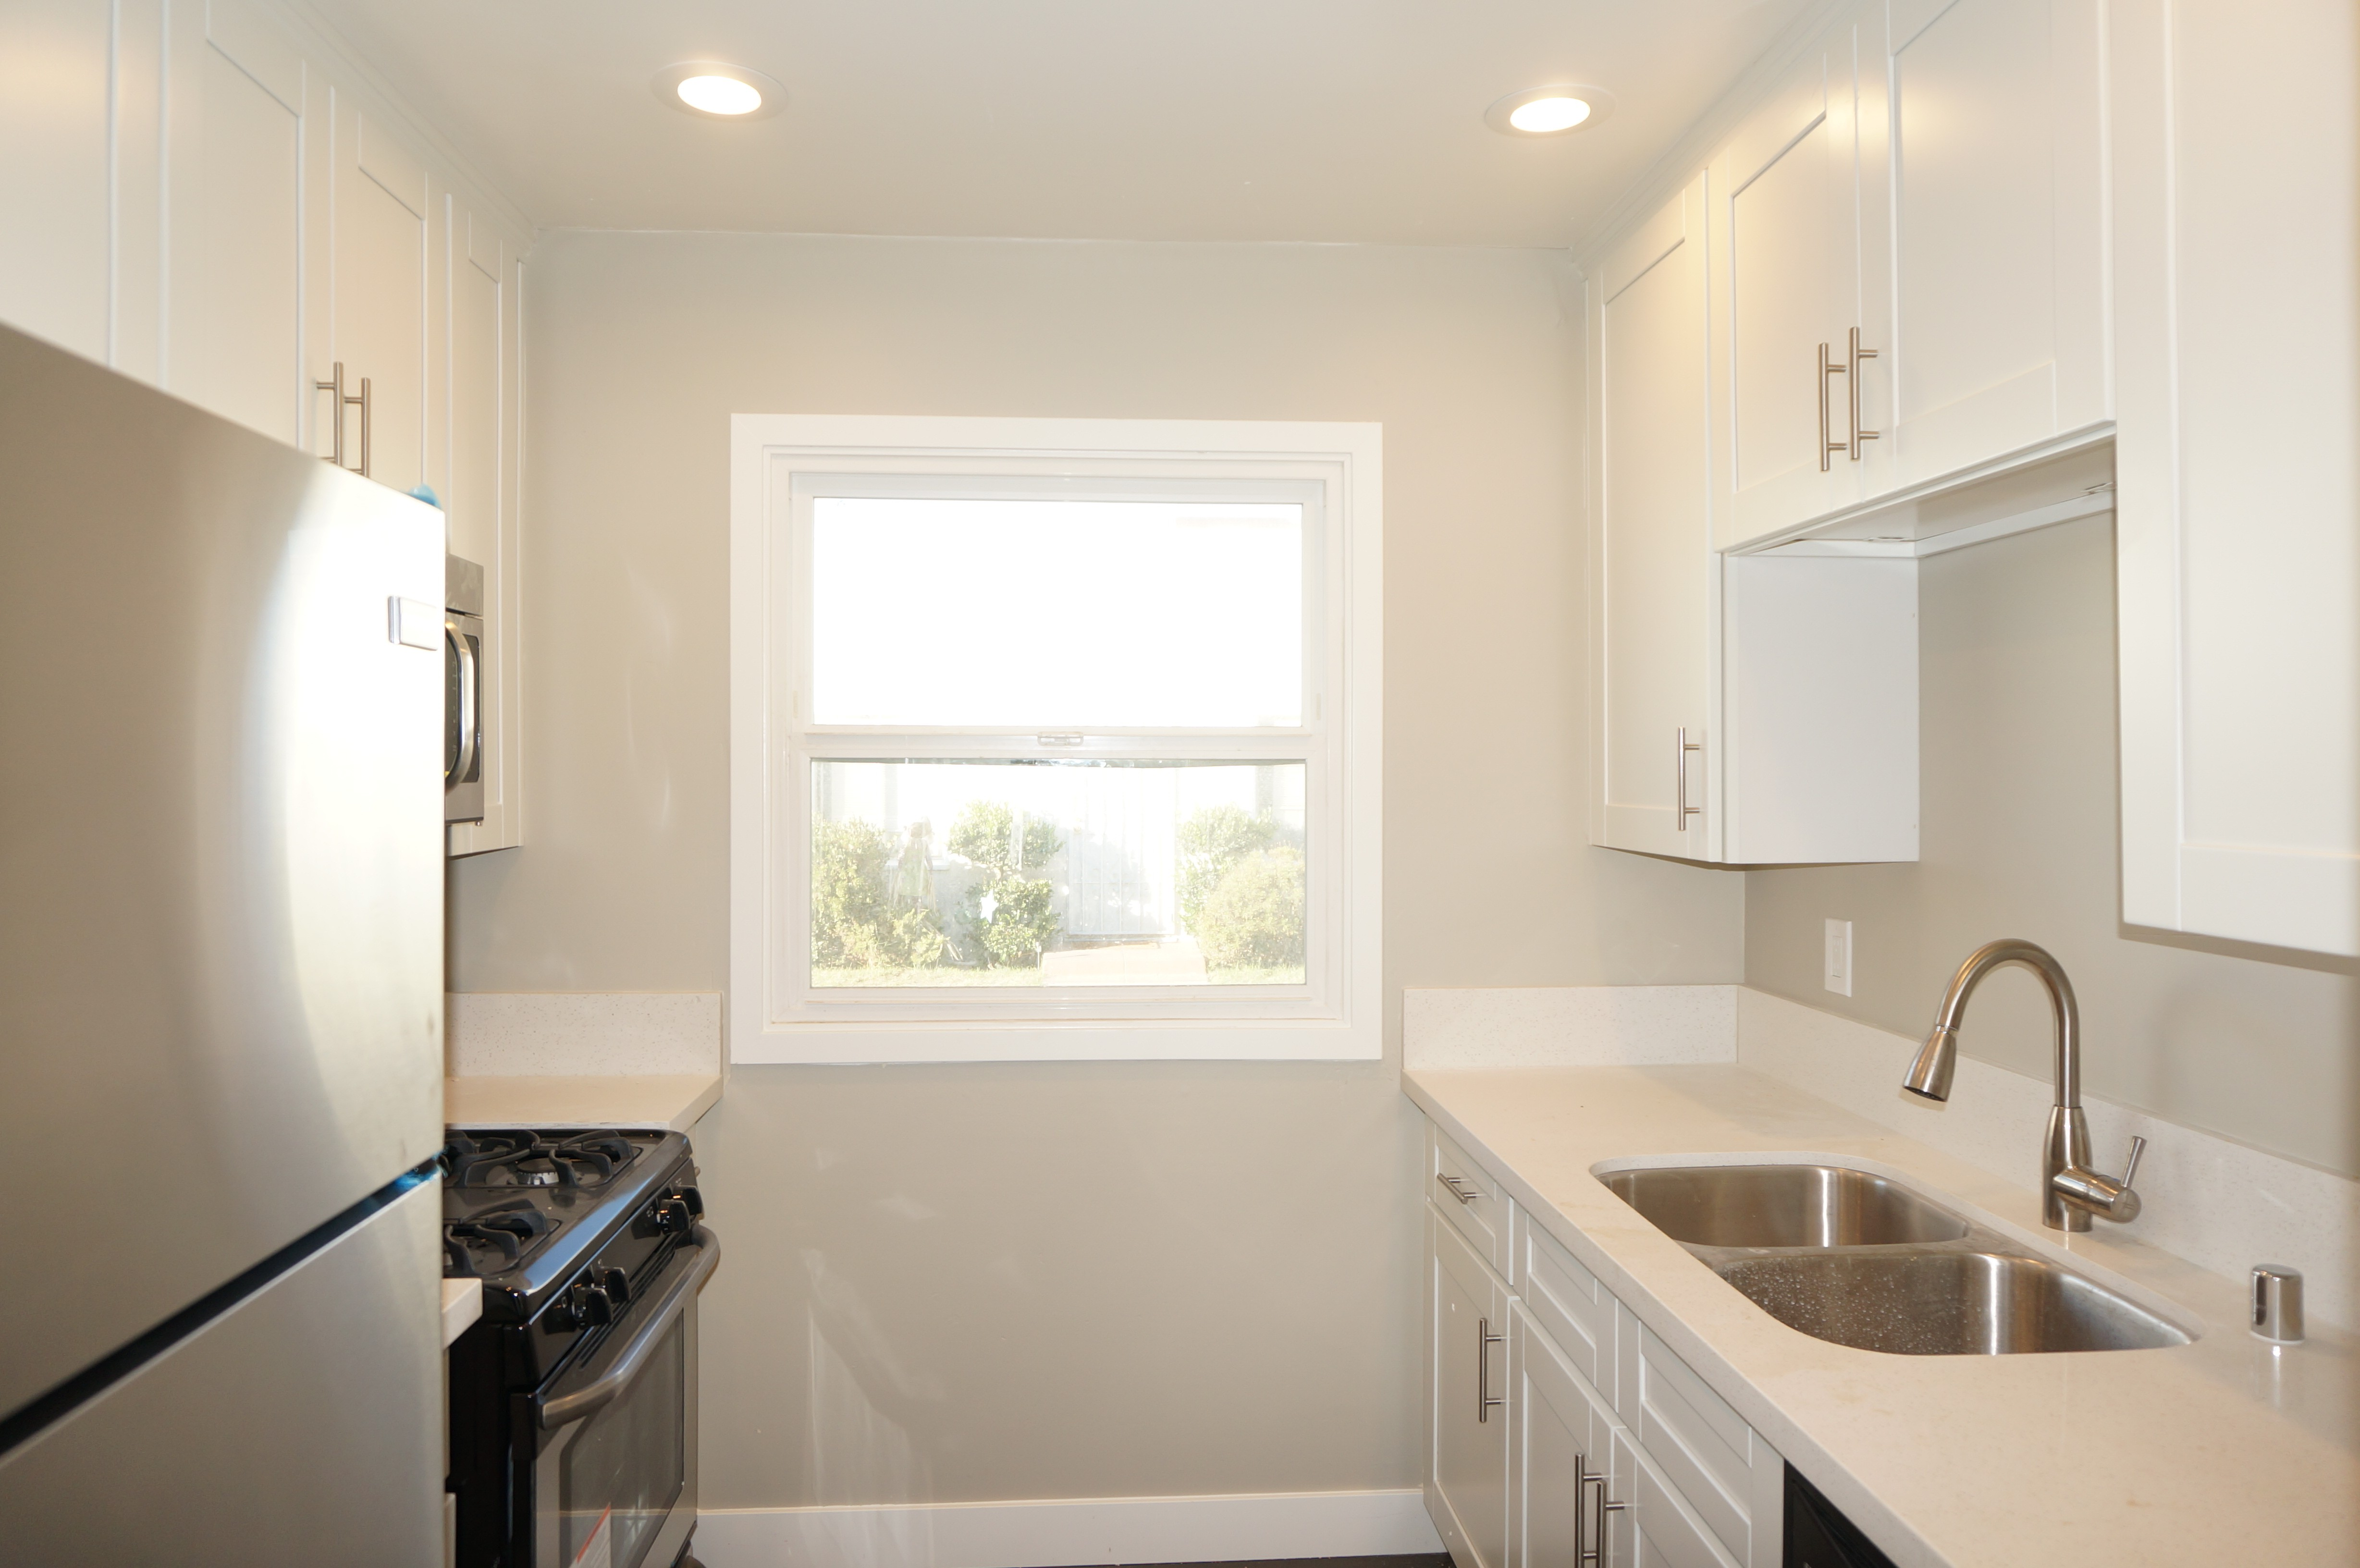 379 termino ave 5 long beach ca 90814 1 bedroom apartment for rent